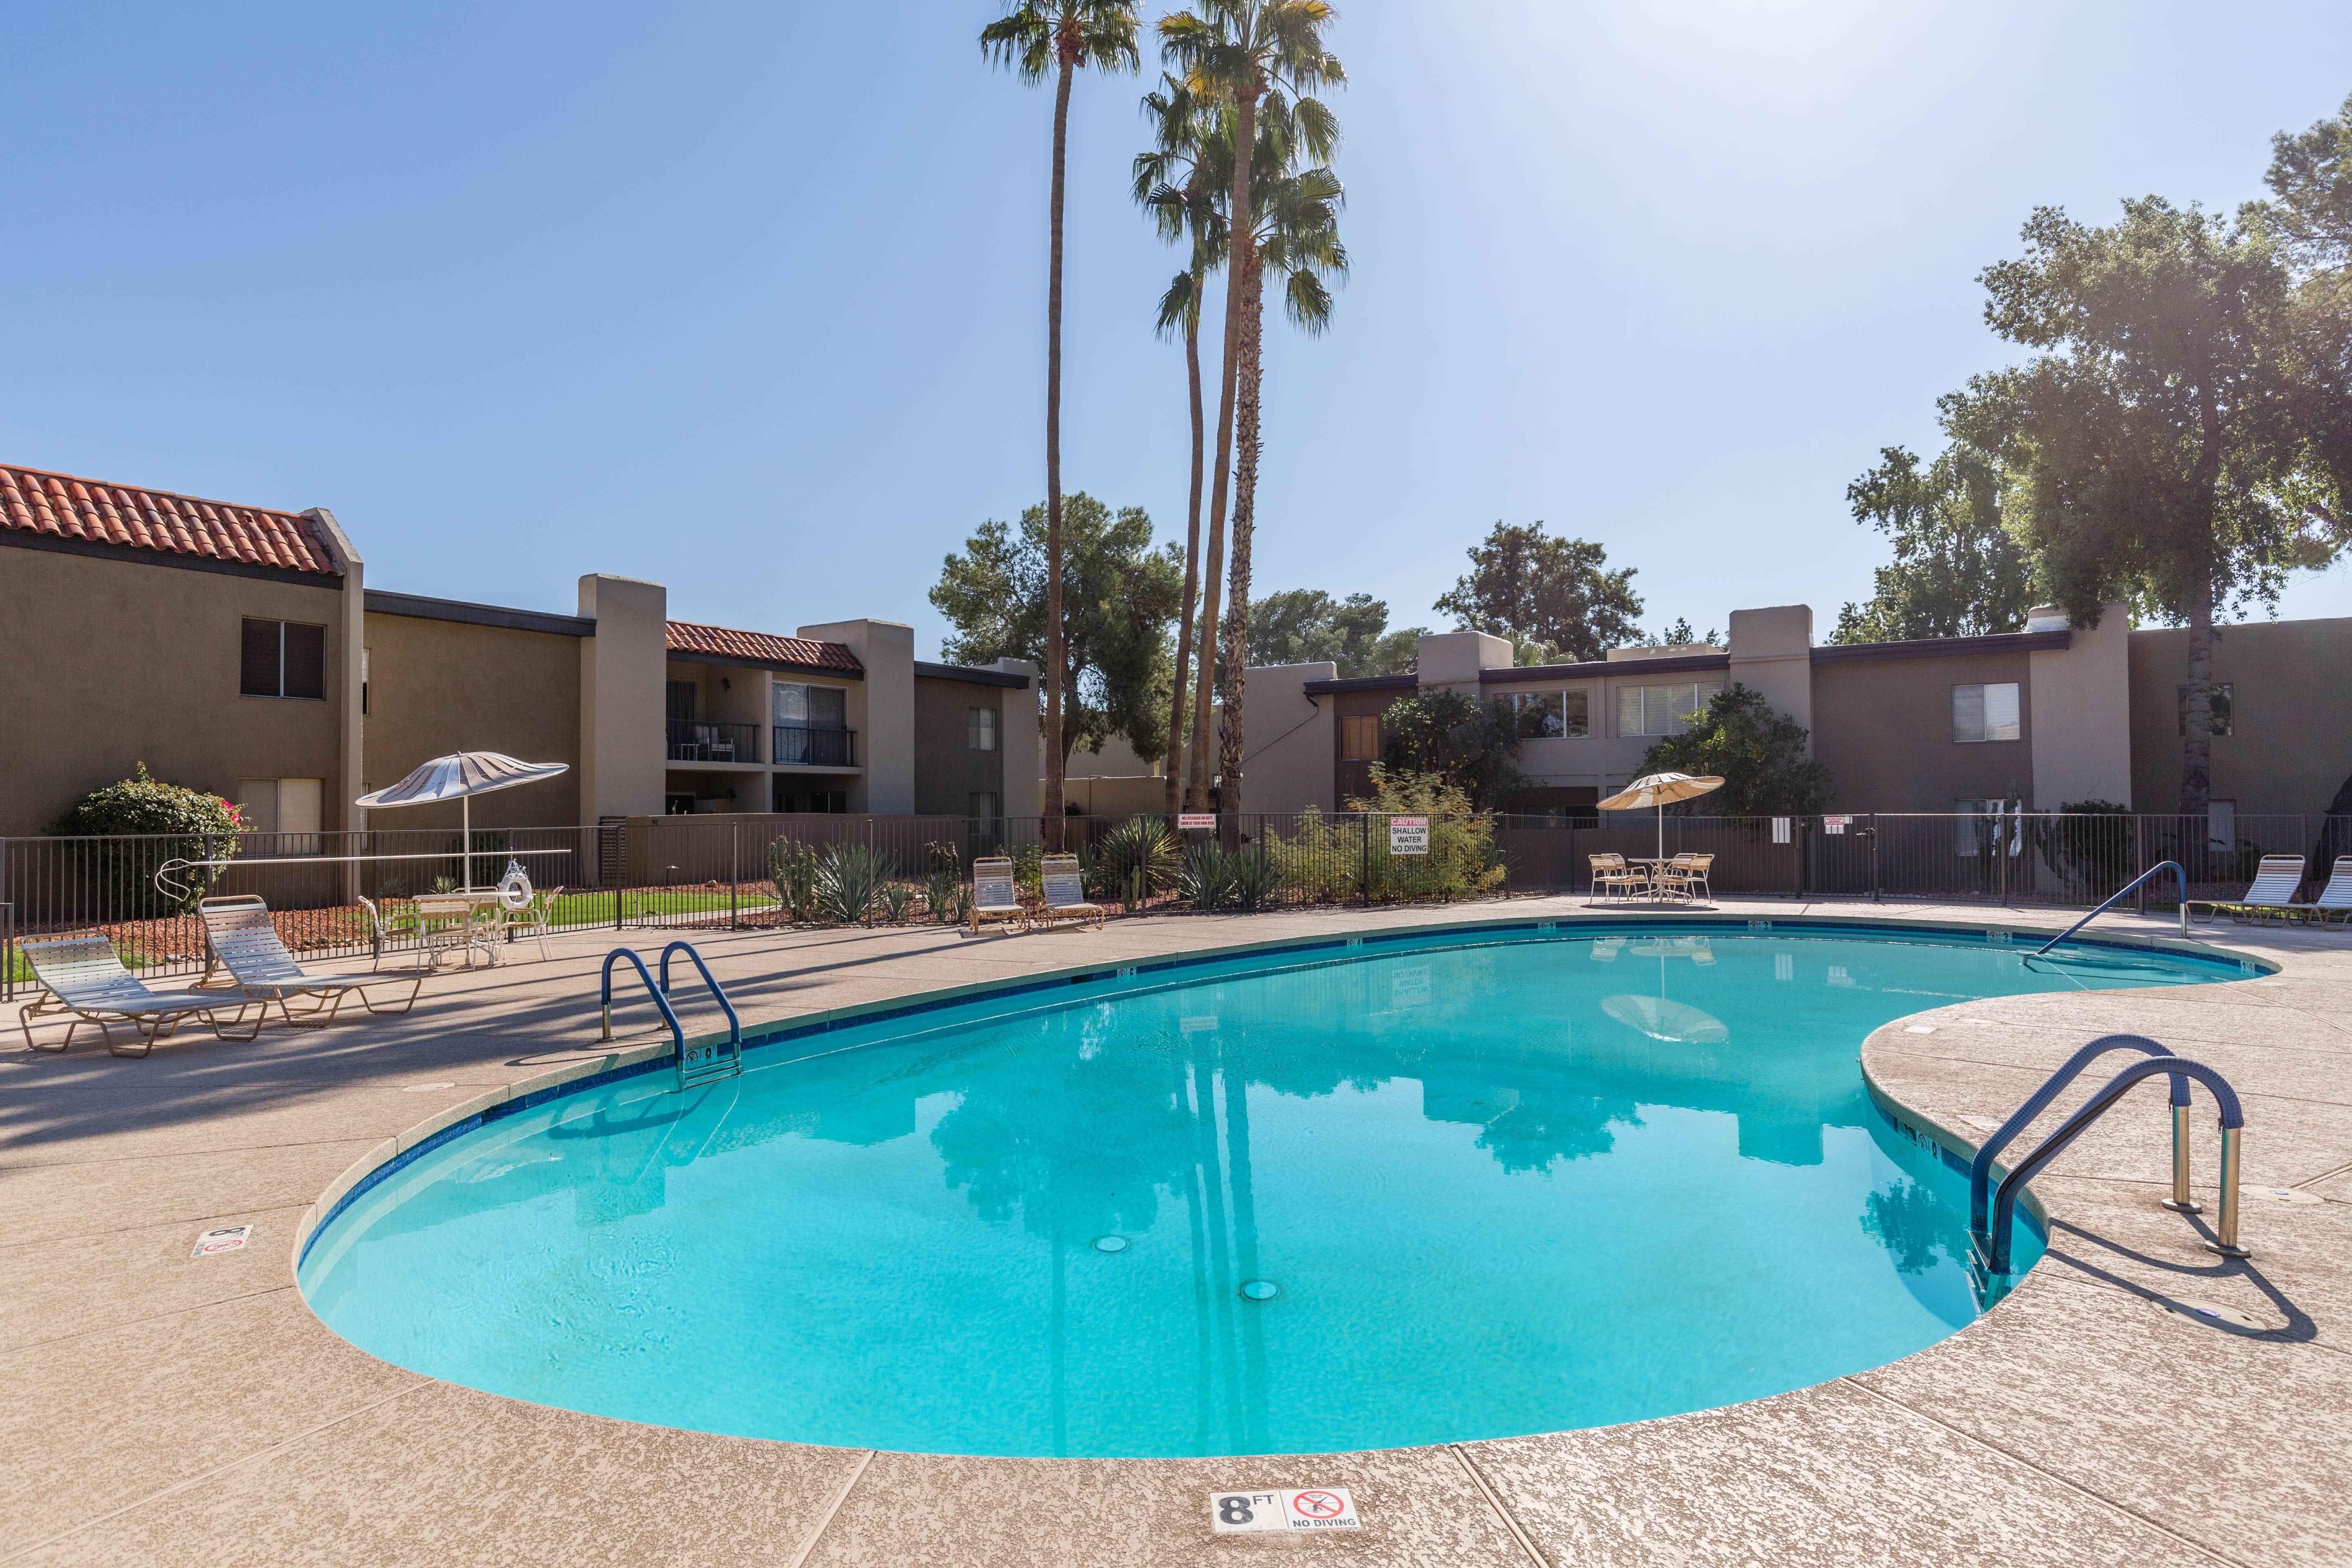 Shared Pool, Spa and BBQ Area